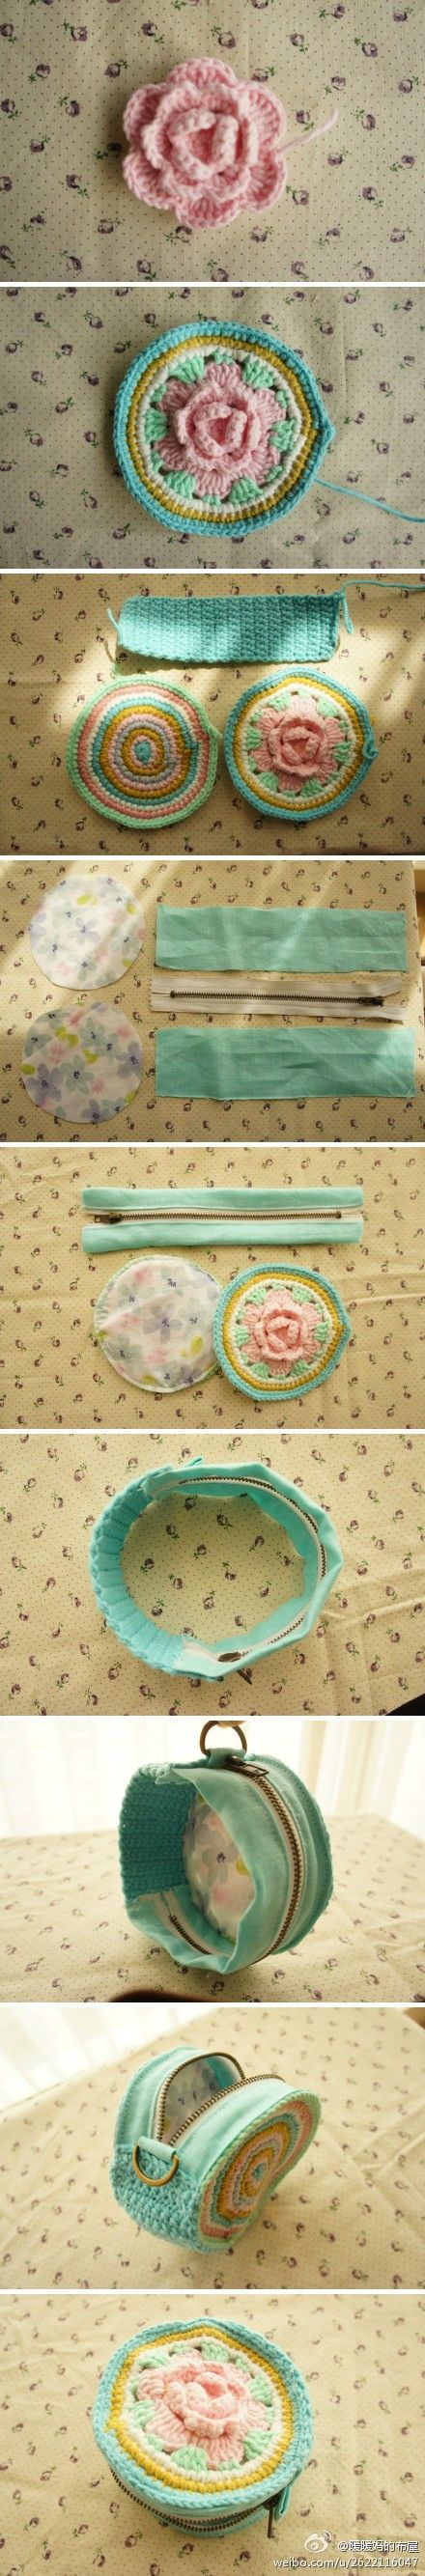 Not so easy but maybe one day I can do it #crochet #purse #sewing